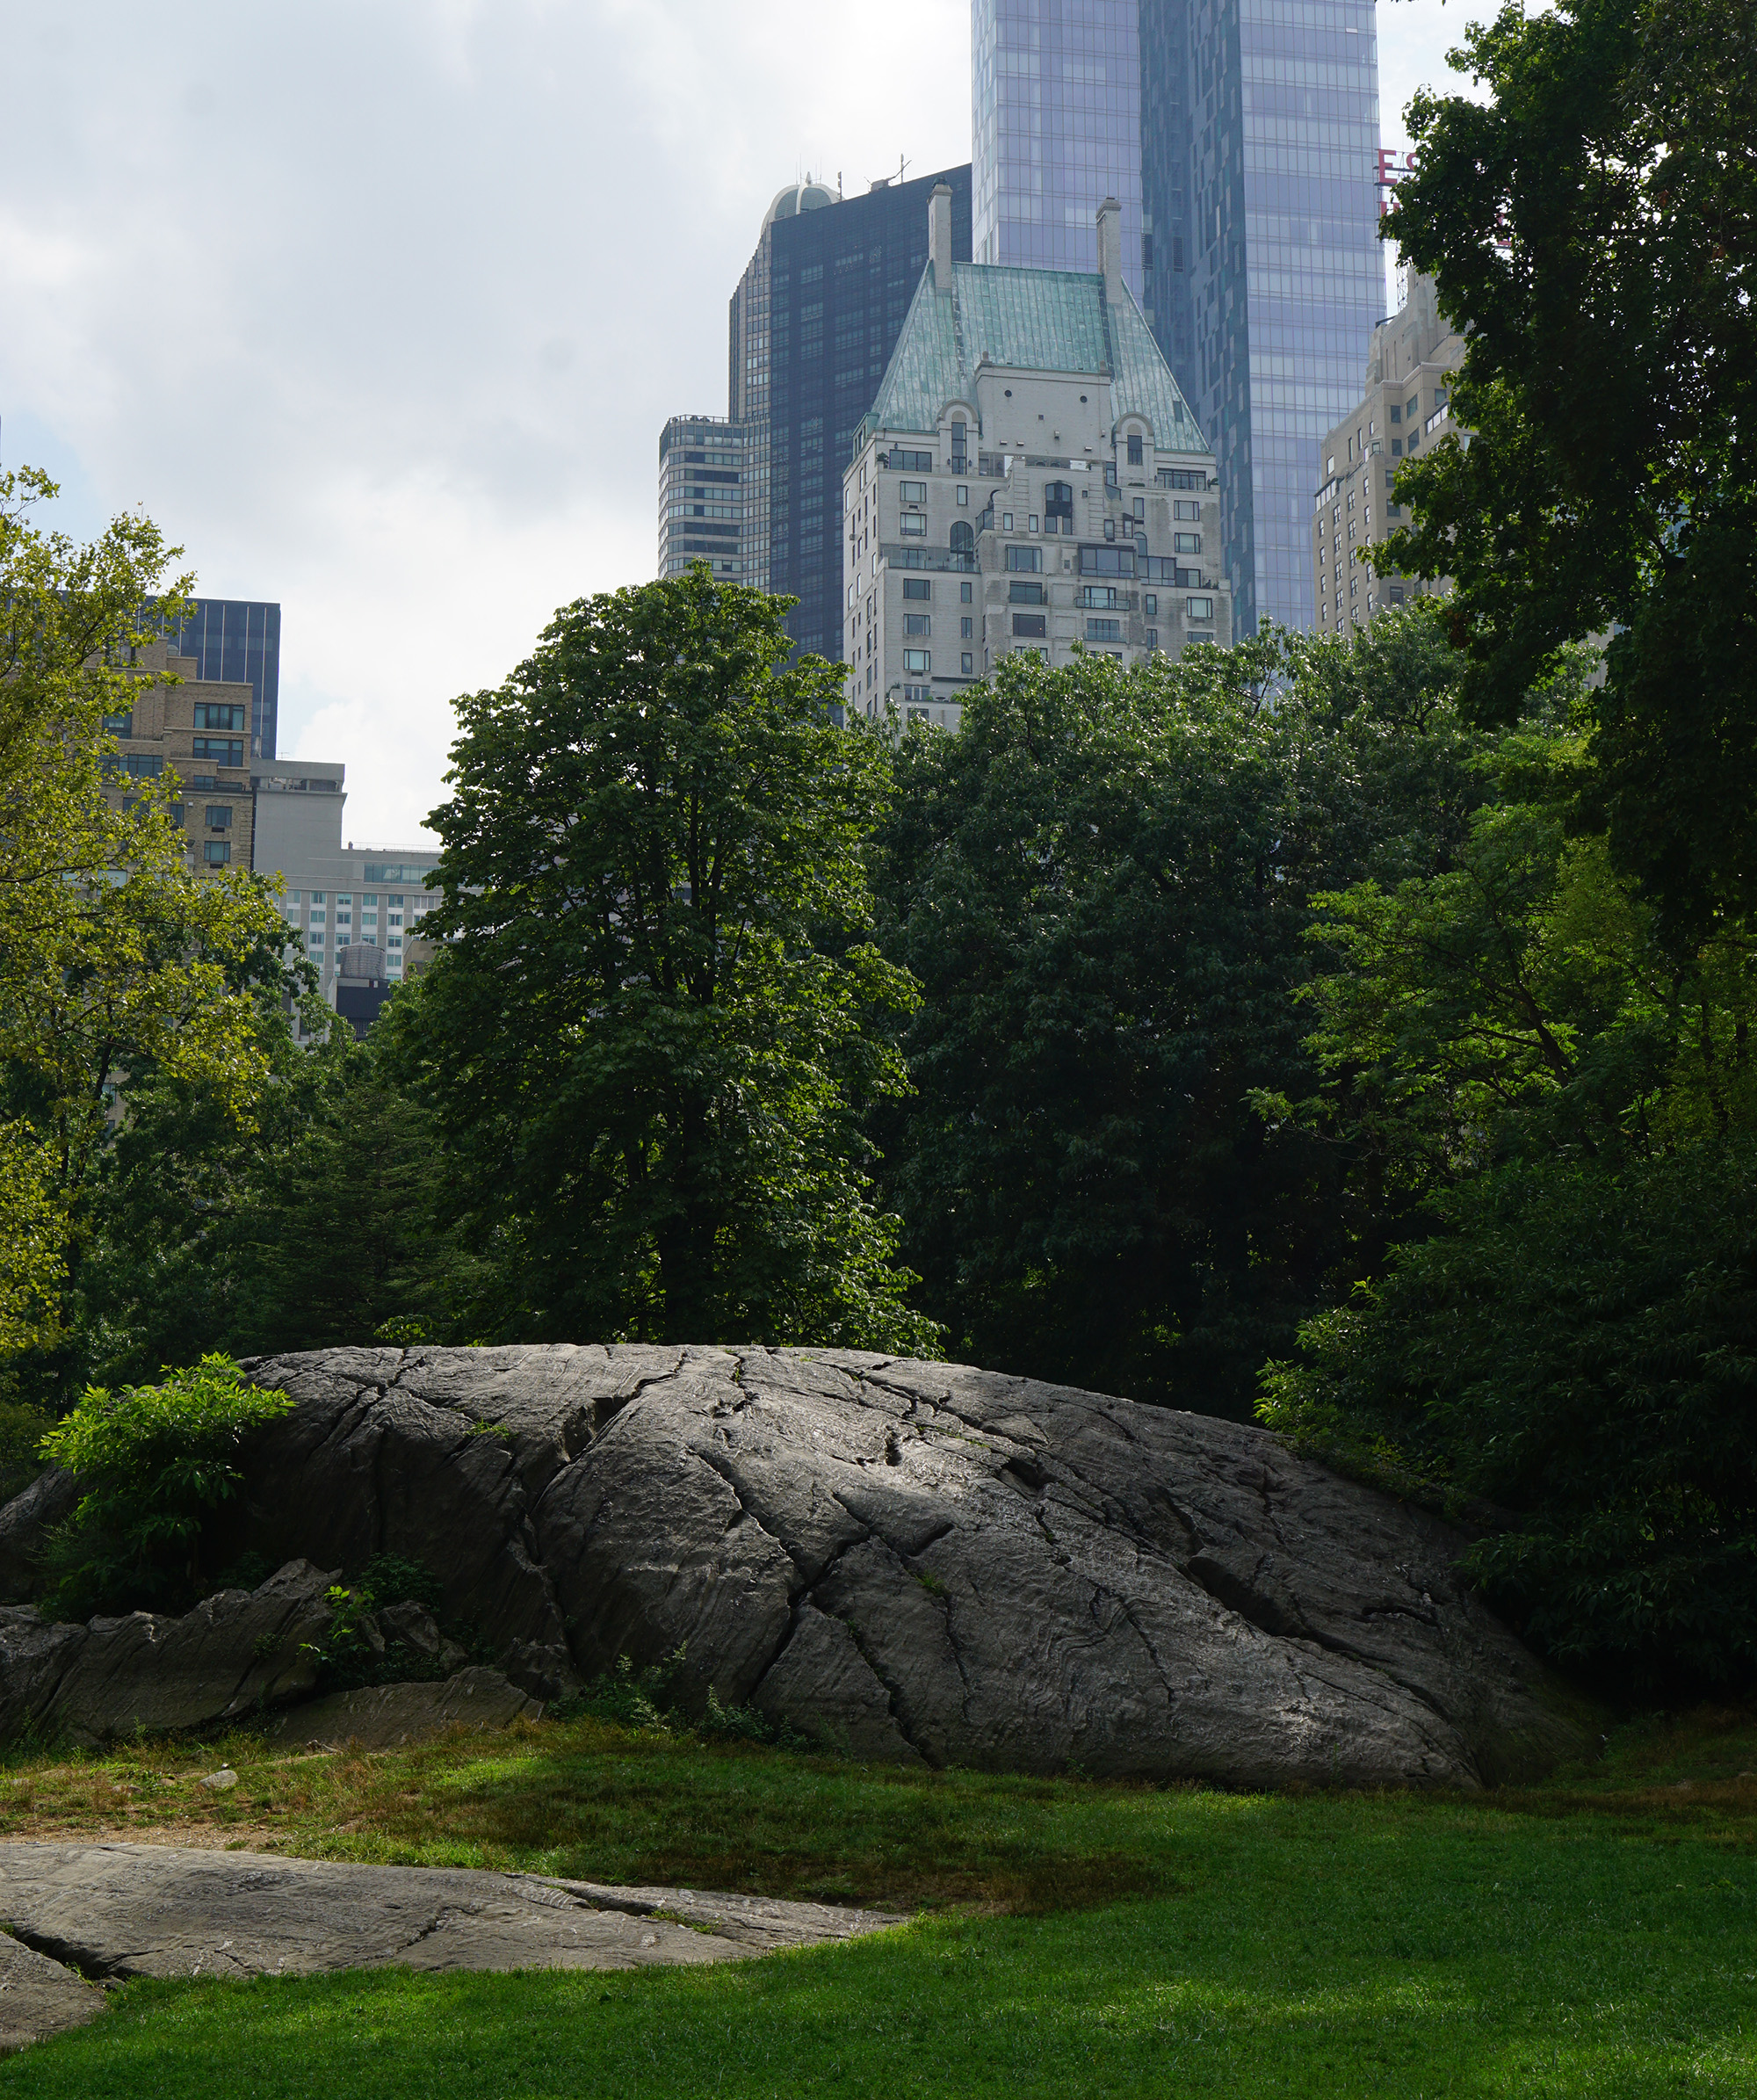 Central Park / NYC Green City Guide / Darker than Green